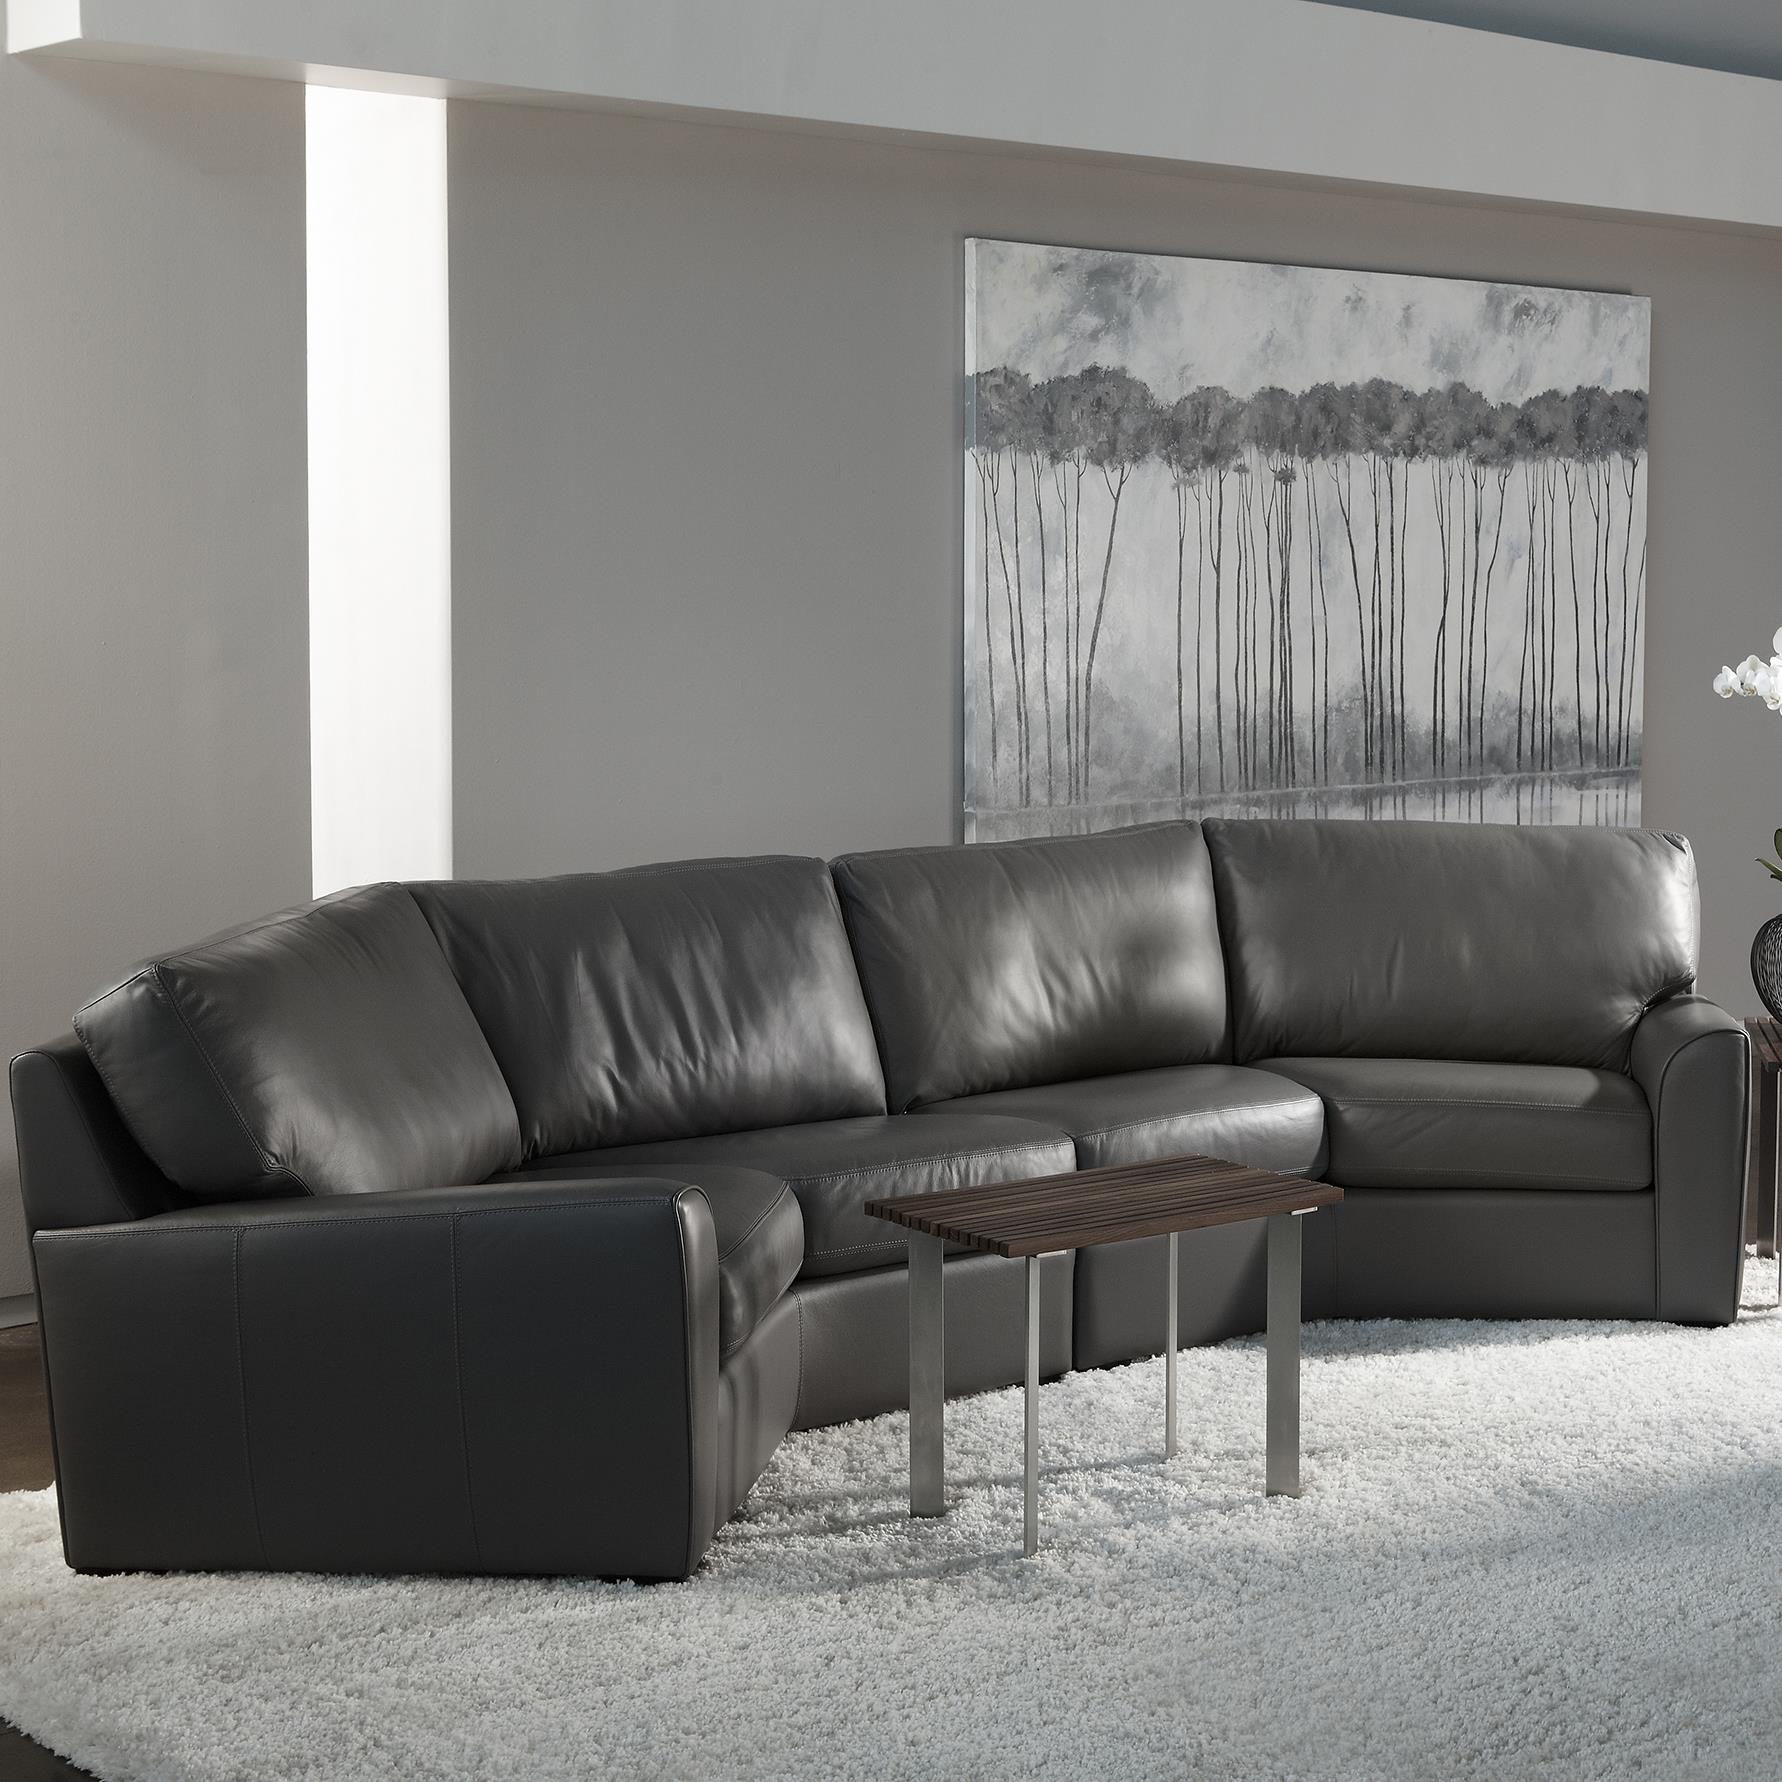 American Leather Kaden Casual Wedge Sectional Sofa